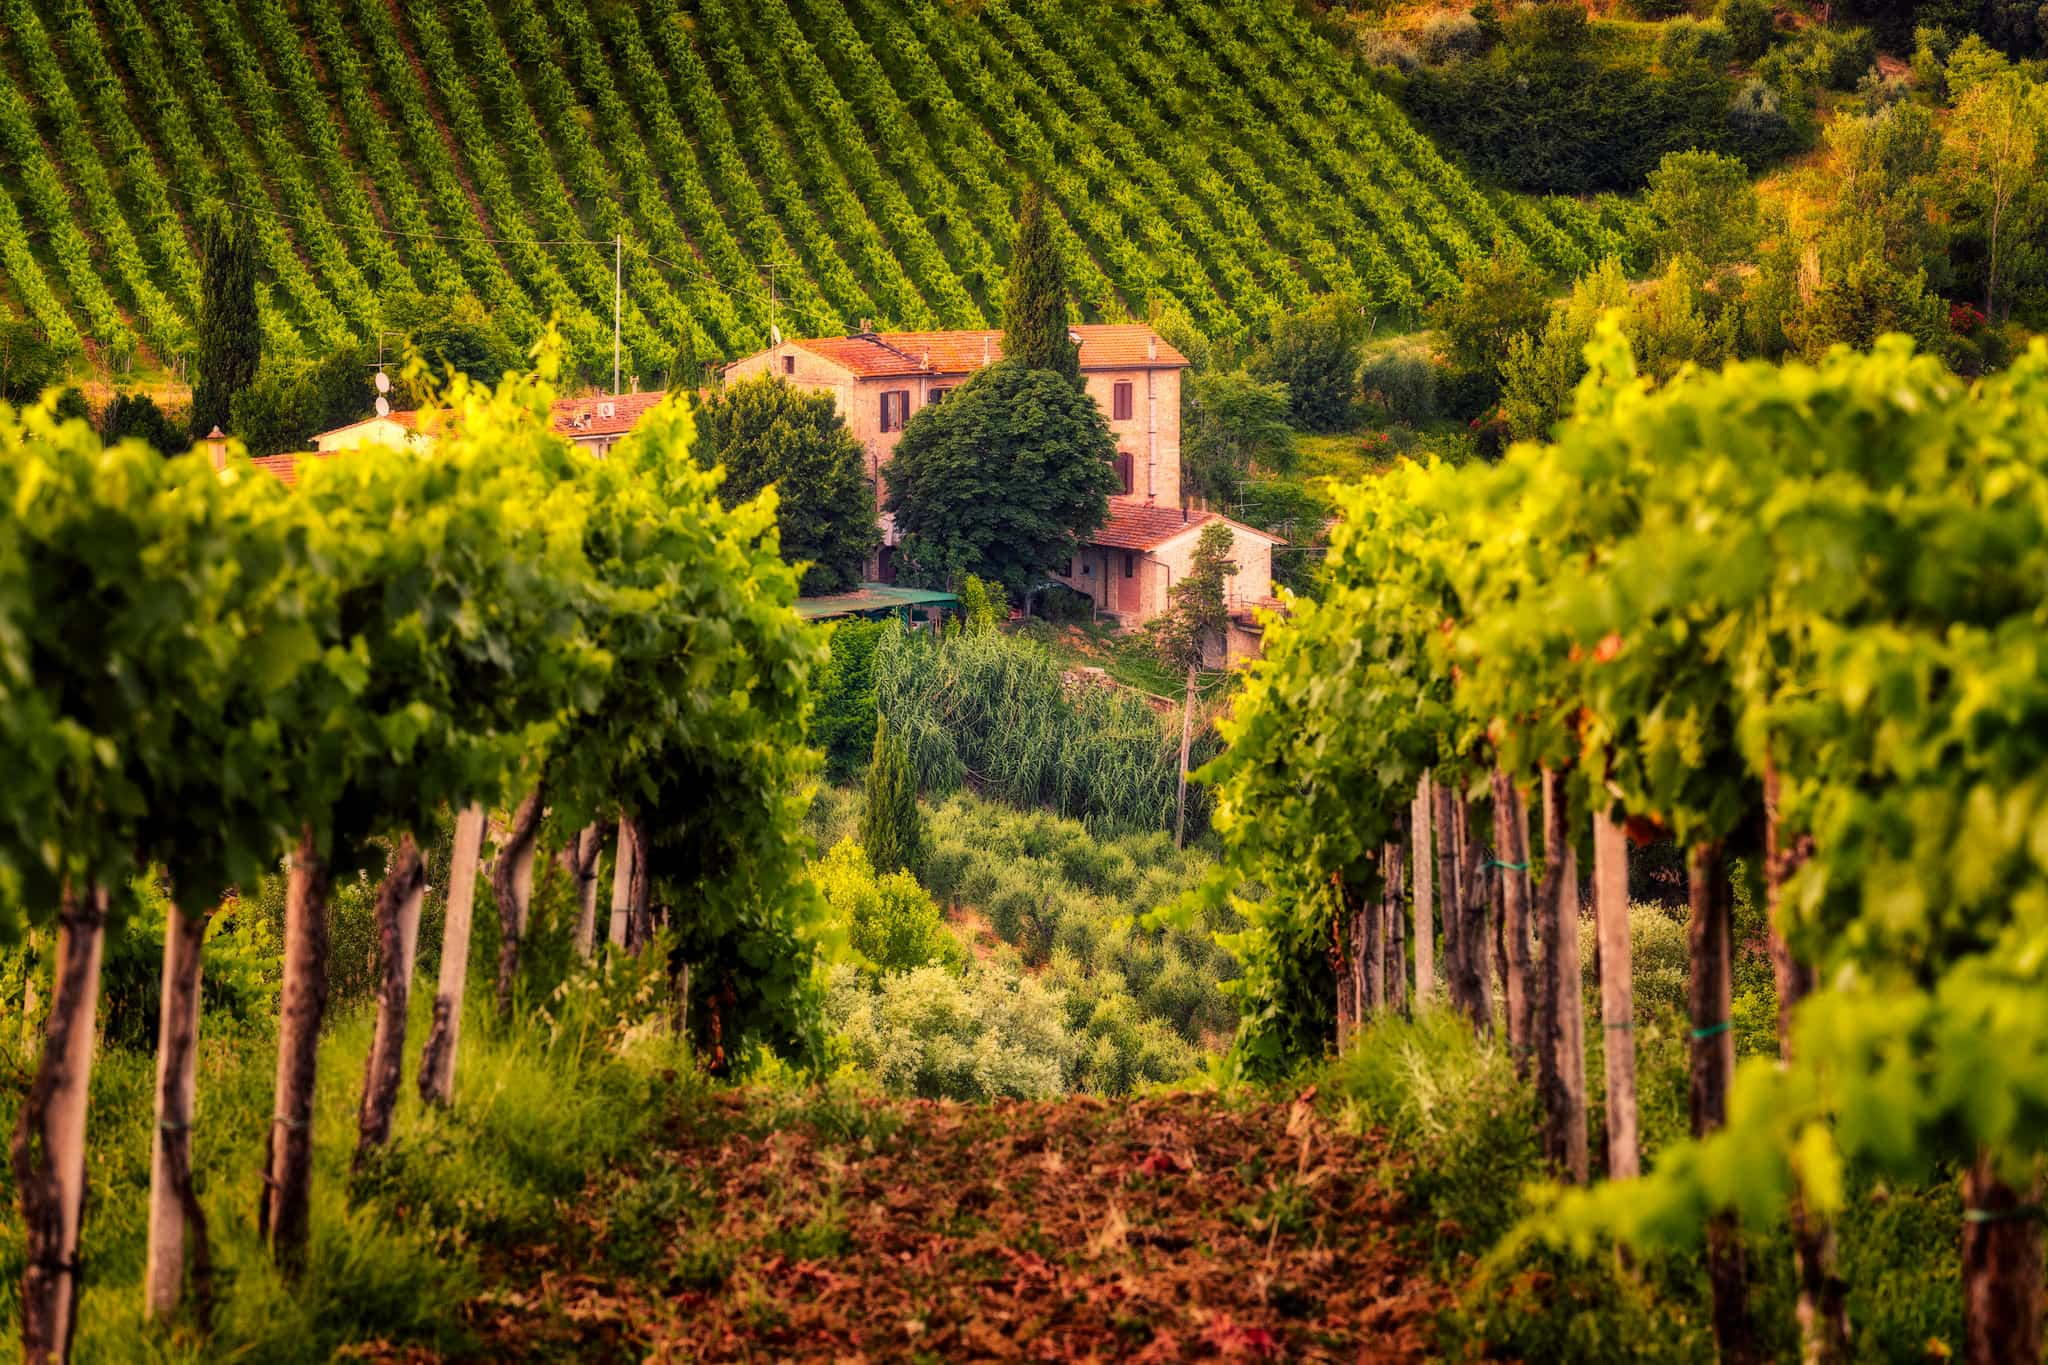 Vineyard | Tuscany, Italy